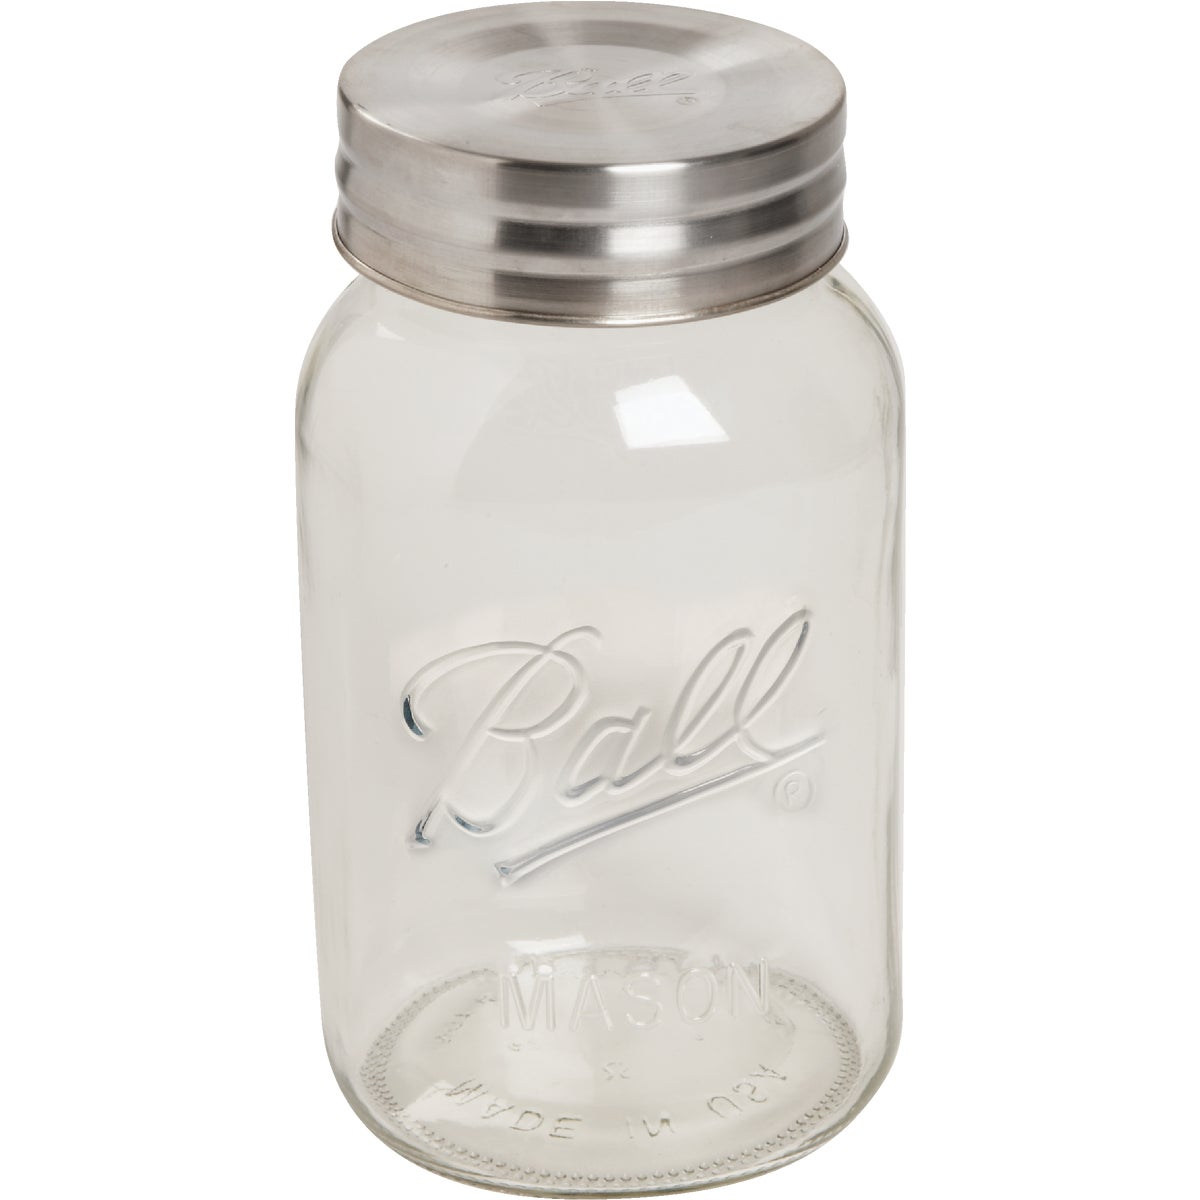 1GAL ANNIVERSARY JAR - 1440070016 by Jarden Home Brands